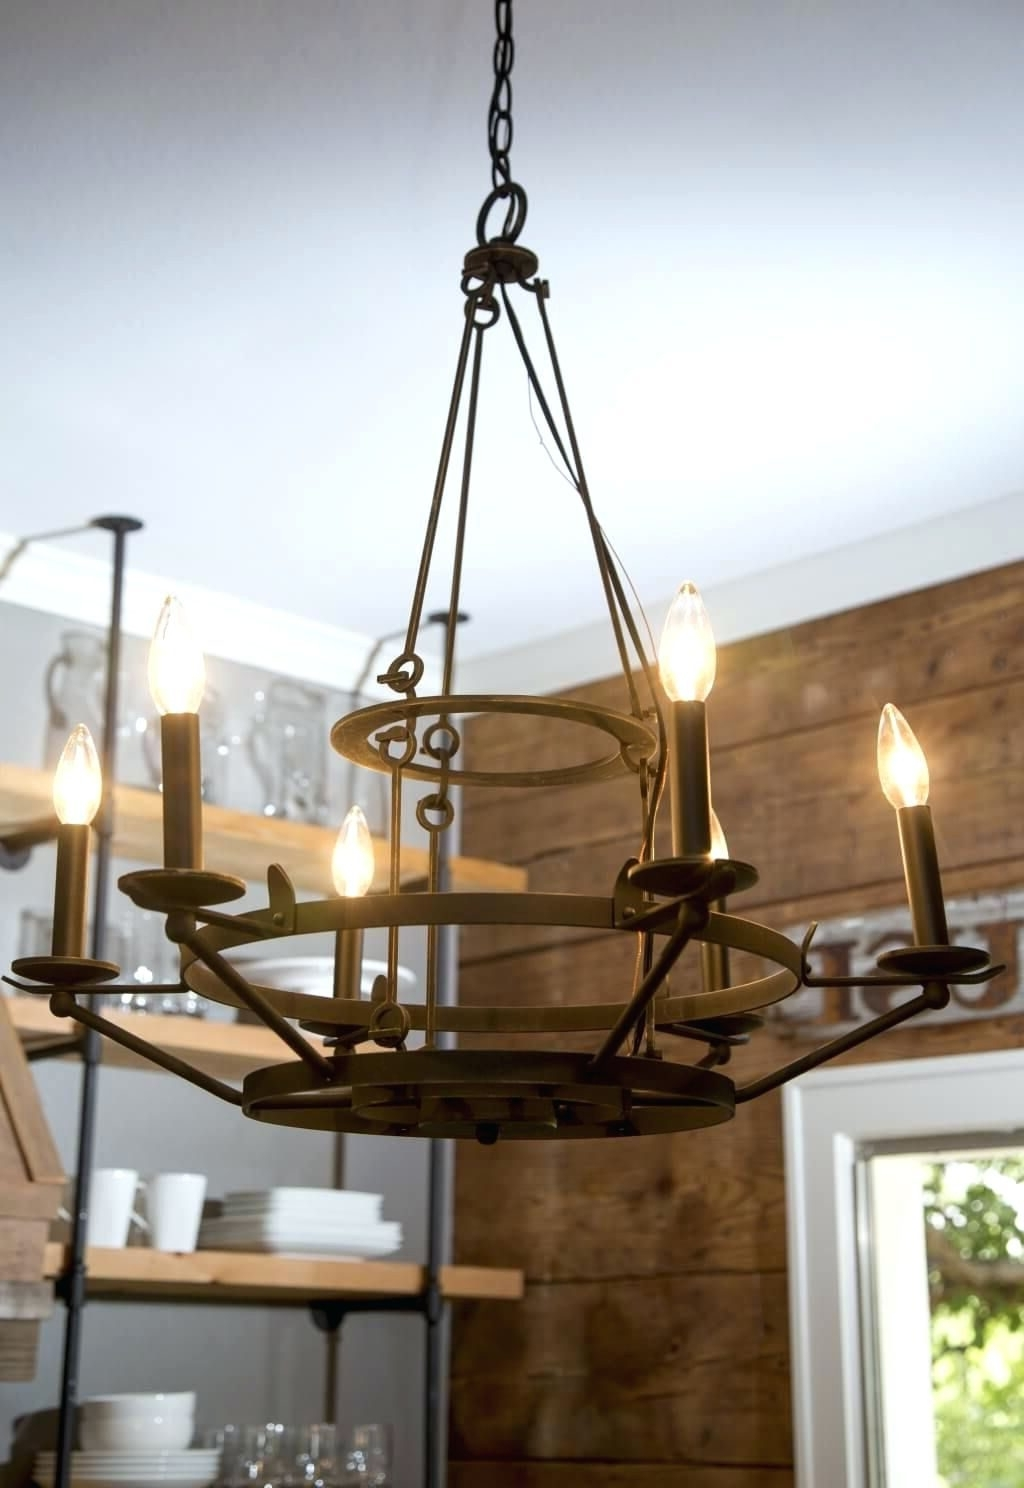 French Wooden Chandelier With Regard To Famous Chandeliers Design : Wonderful Diy Wood Chandelier Planter Outdoor (View 11 of 20)